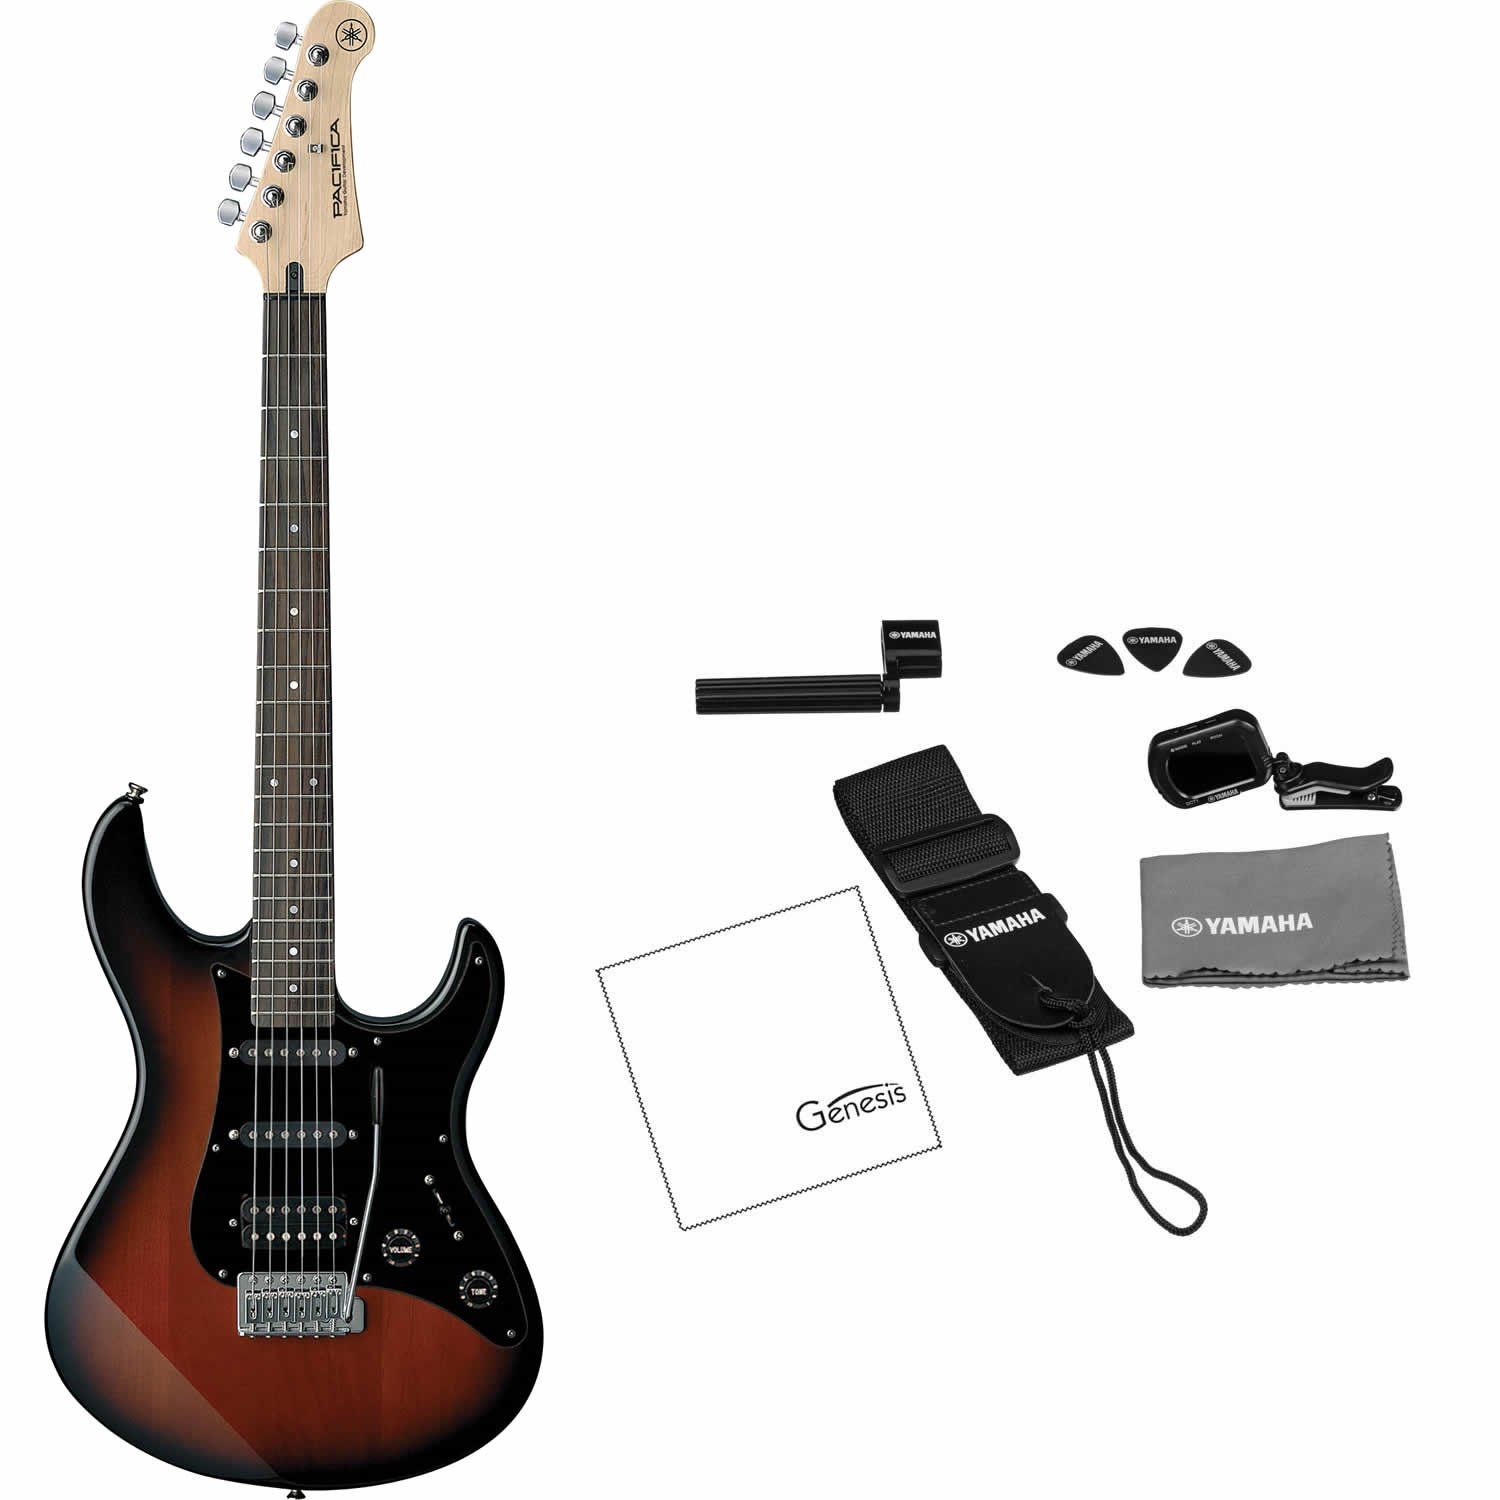 Yamaha PAC012DLX OVS Pacifica Double-Cutaway Electric Guitar (Old Violin Sunburst) (FREE Tuner, Strap, Guitar Picks, String Winder, and Polishing Cloth)